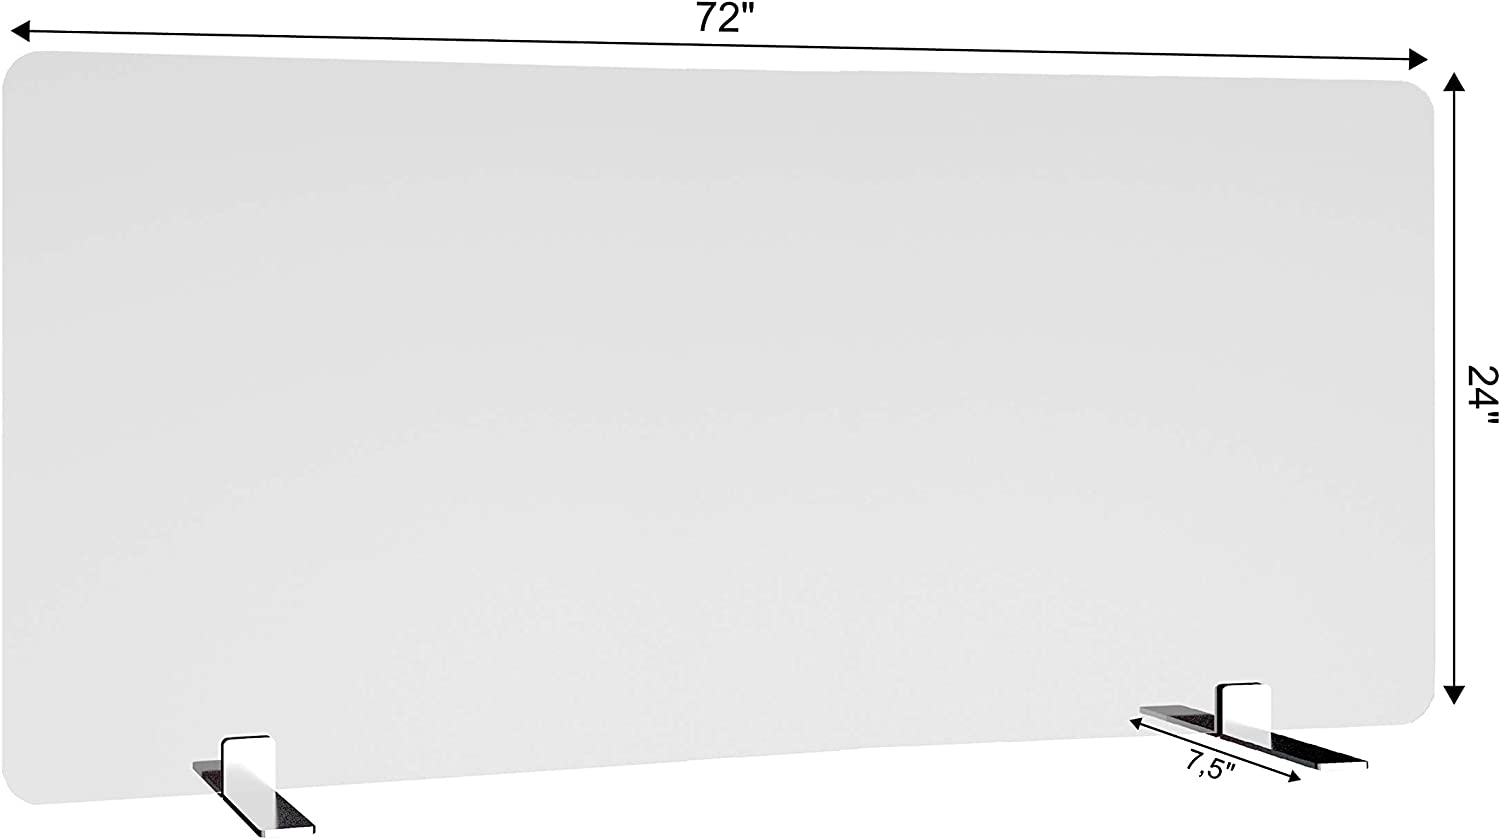 """Free-Standing Acrylic Protective Guard for Countertops w/Small 7.5 inches Flat Legs, Office Desk Partition Panels, Protective Barriers for Workspaces (72"""" x 24"""")"""